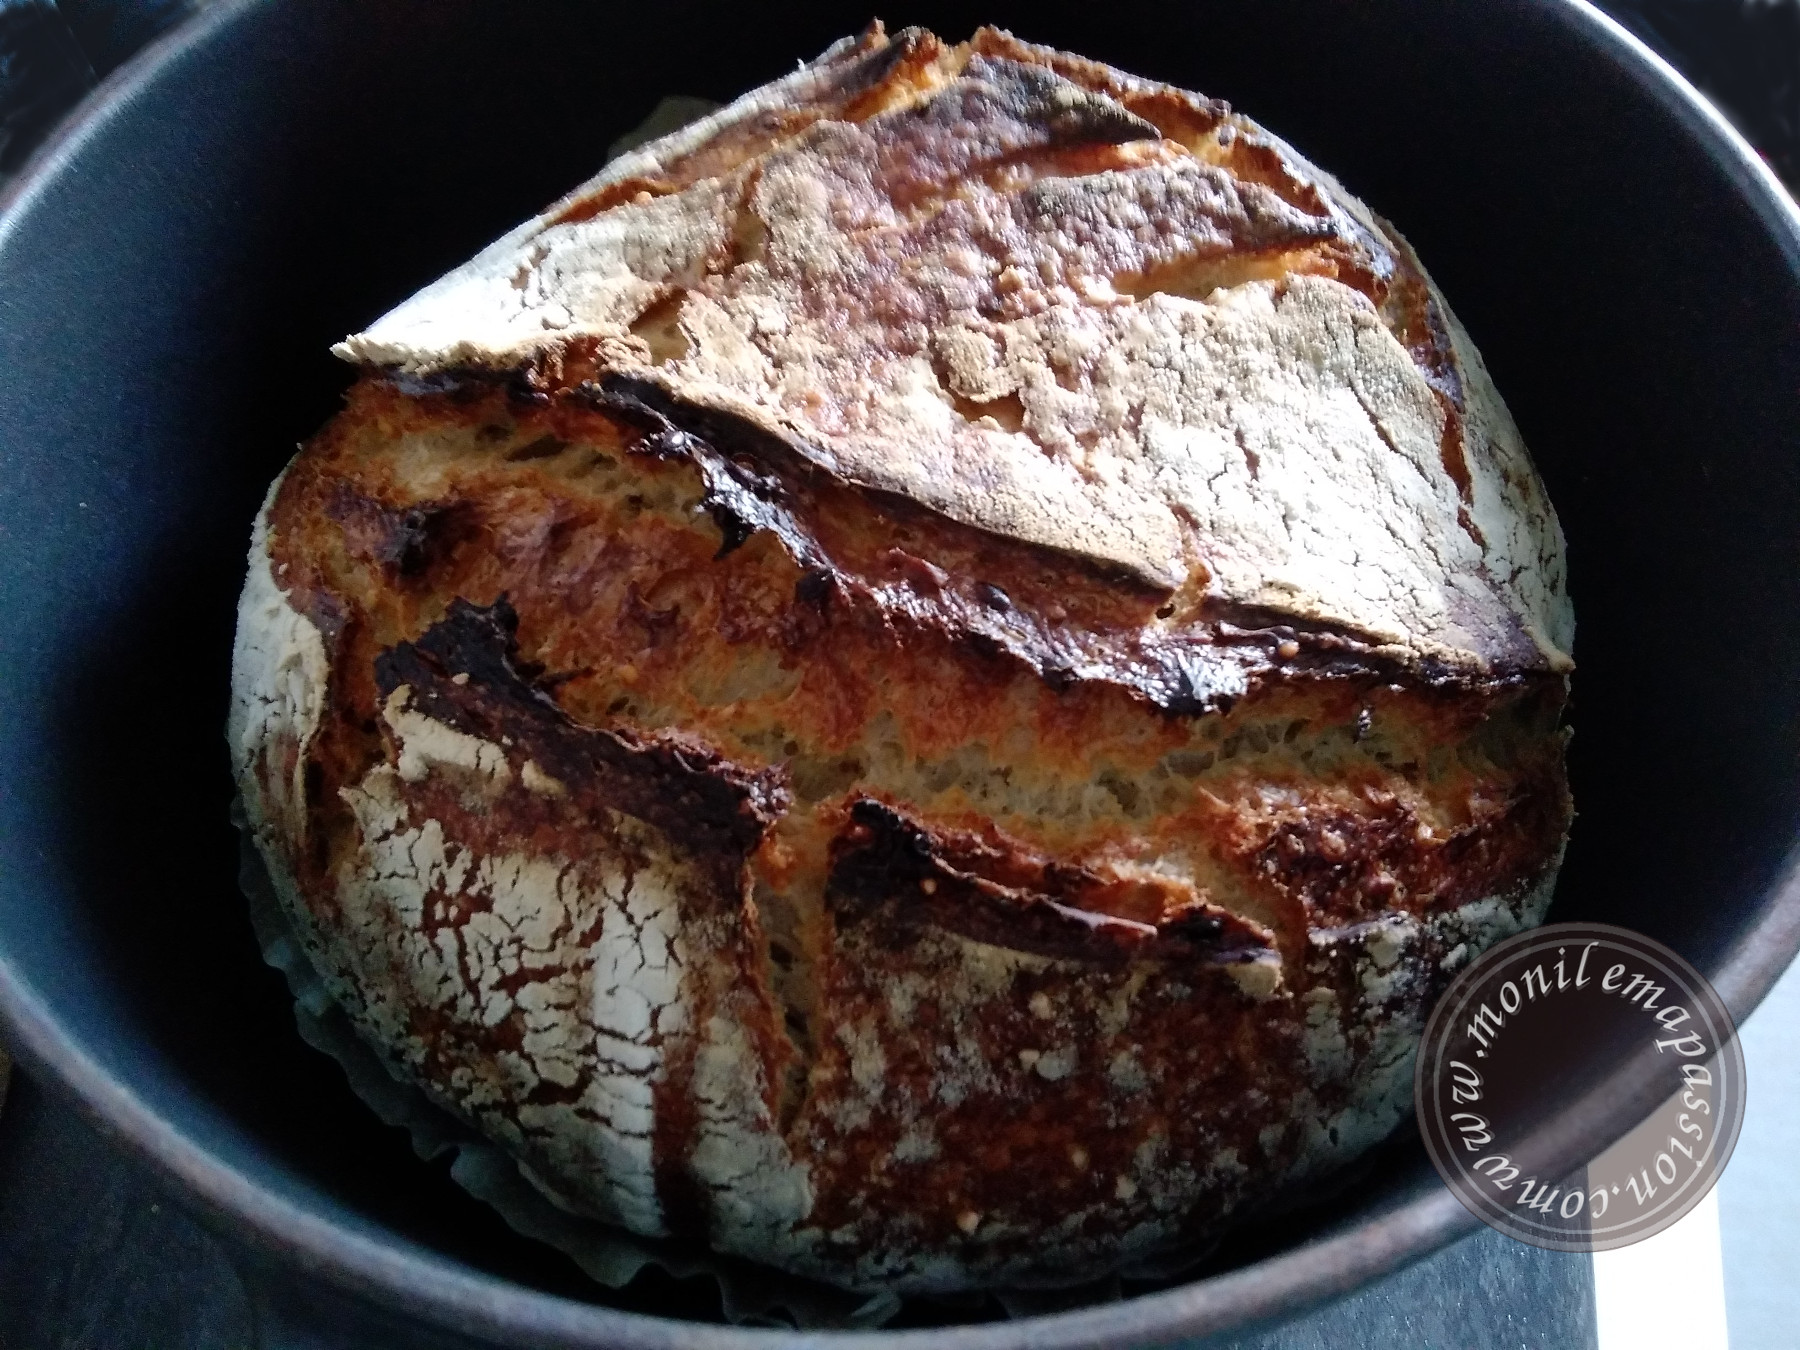 Pain De Campagne Au Levain #1 – Leaven/Sourdough Bread #1